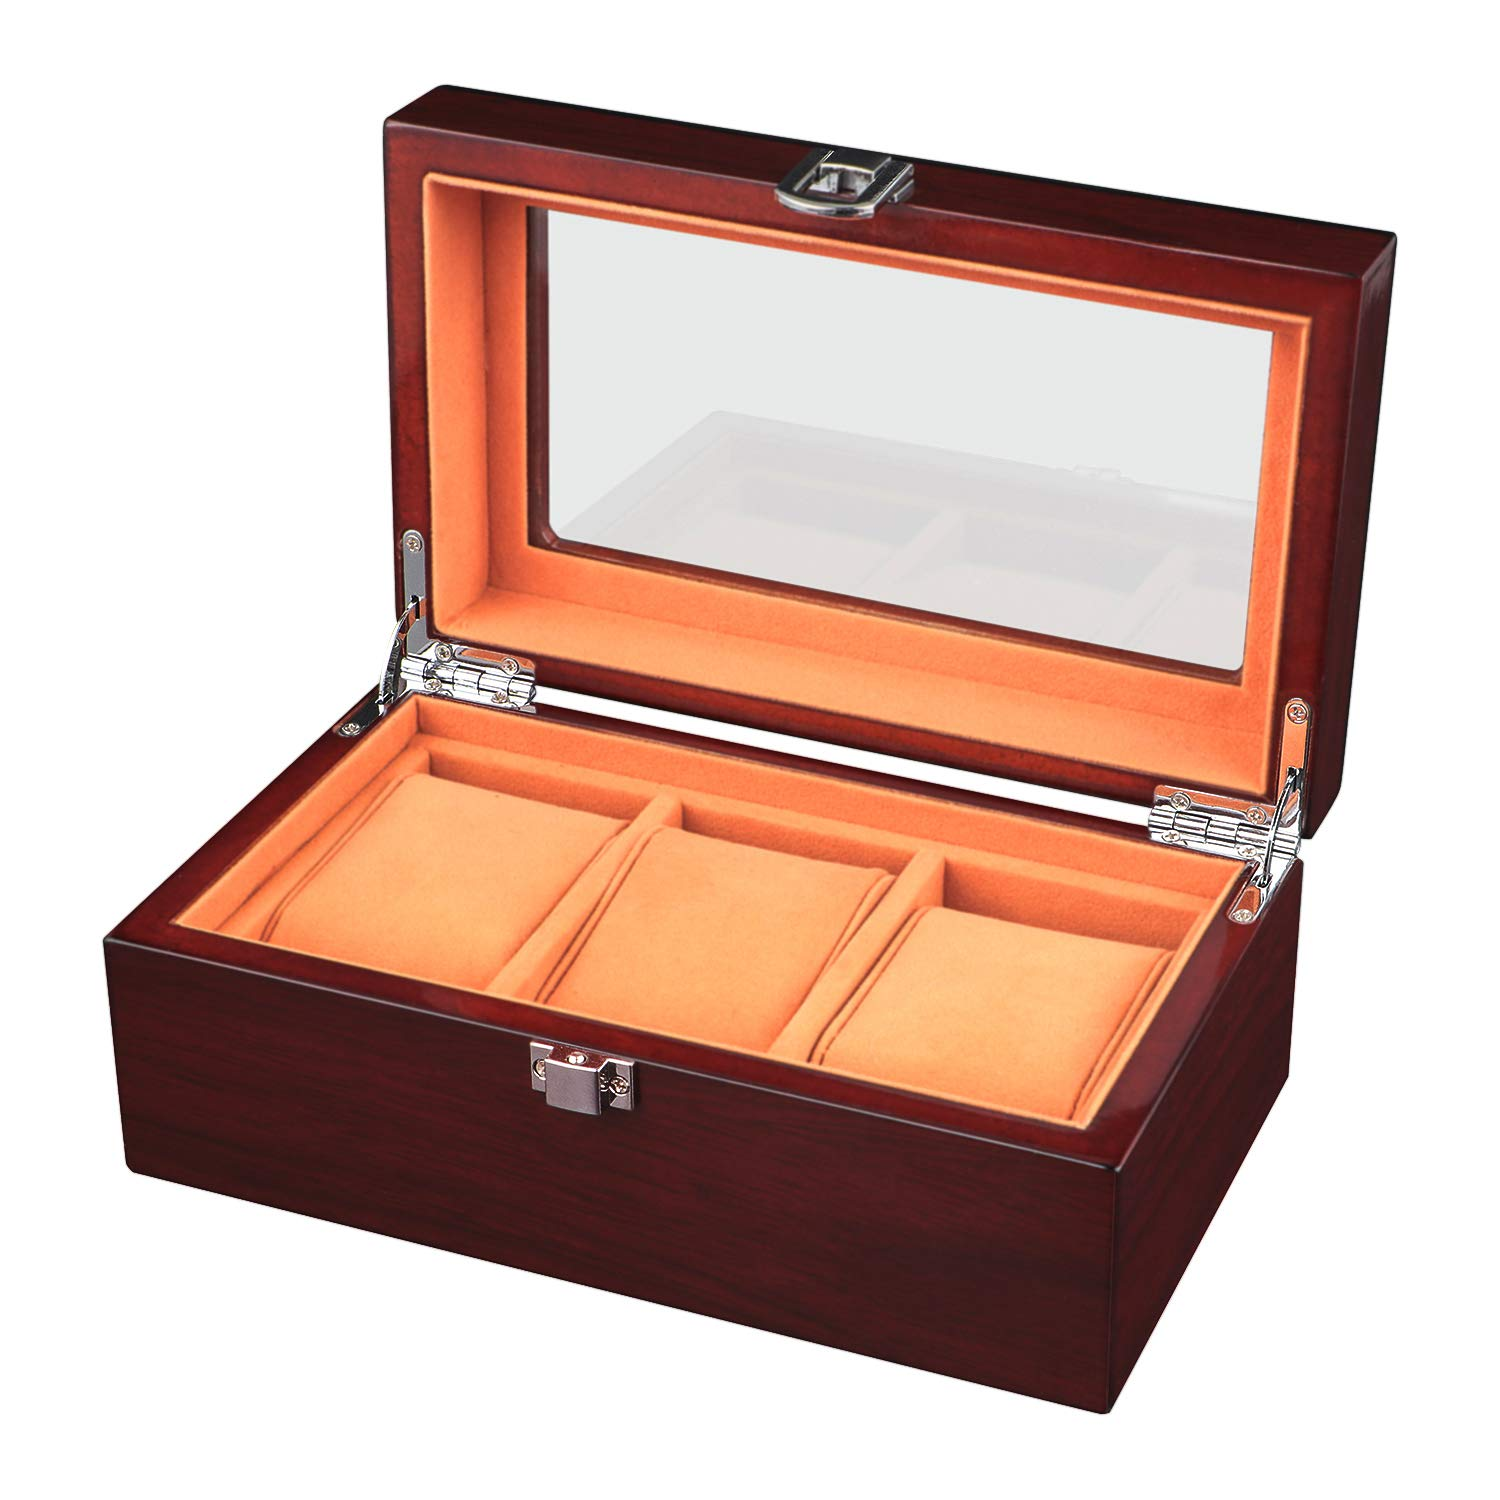 Watch Box Wooden 3 Slots Watch Case Jewelry Display Storage Boxes with Large Plastic Windows Top and Removal Storage Pillows Brown